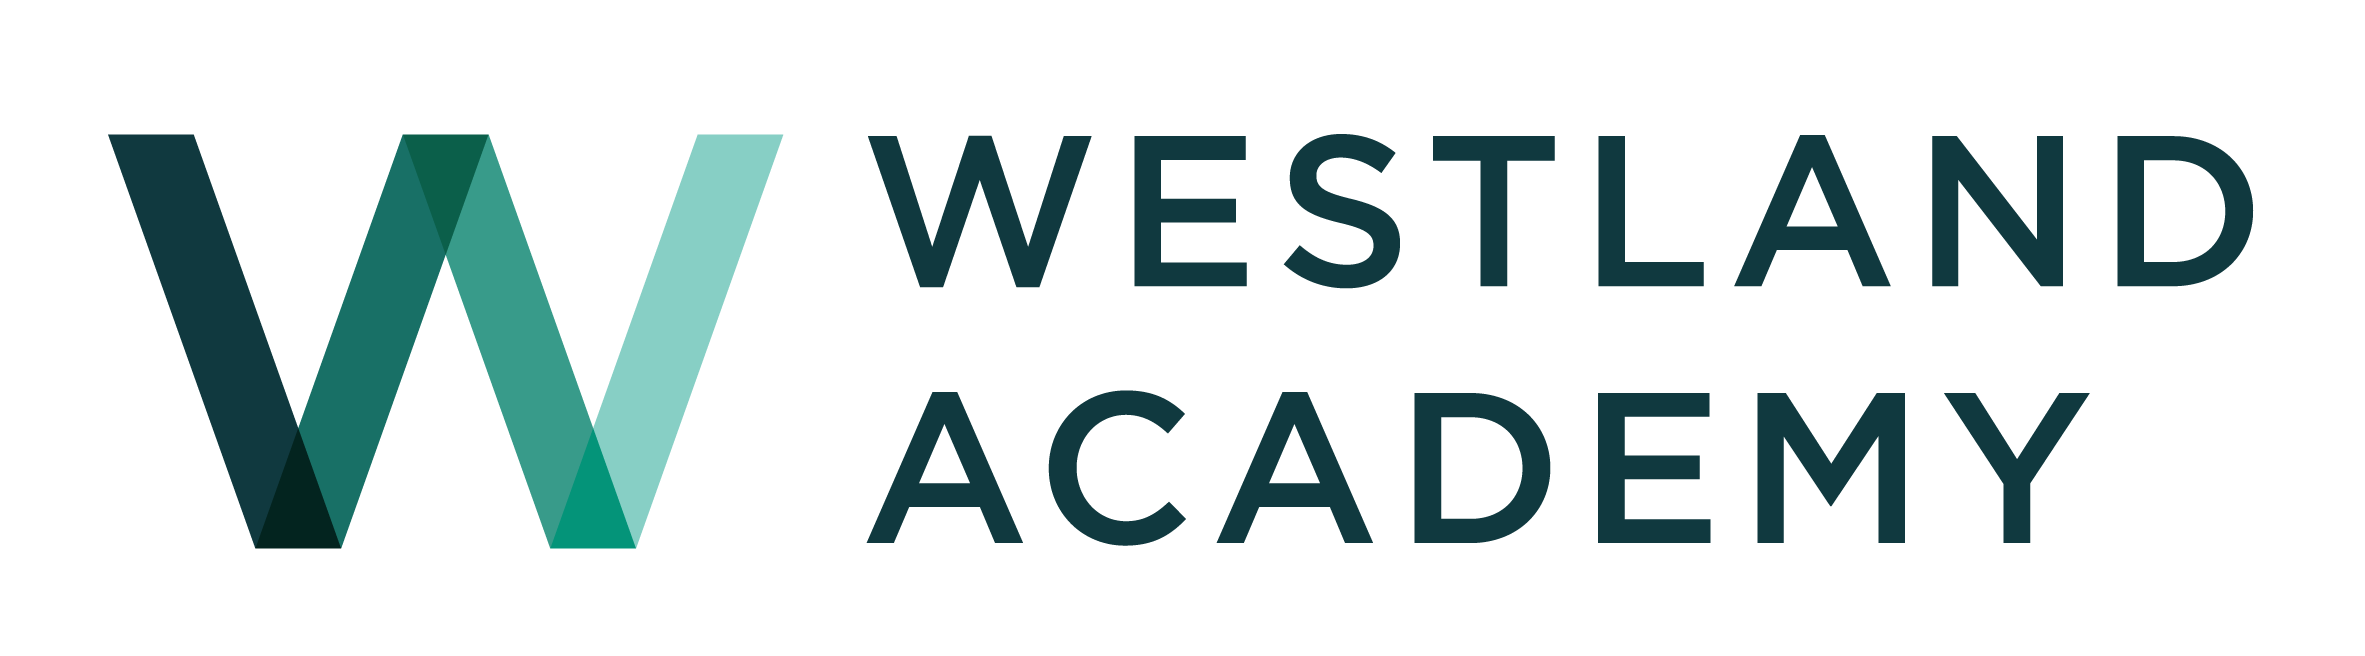 Westland Academy of Clinical Sex Therapy